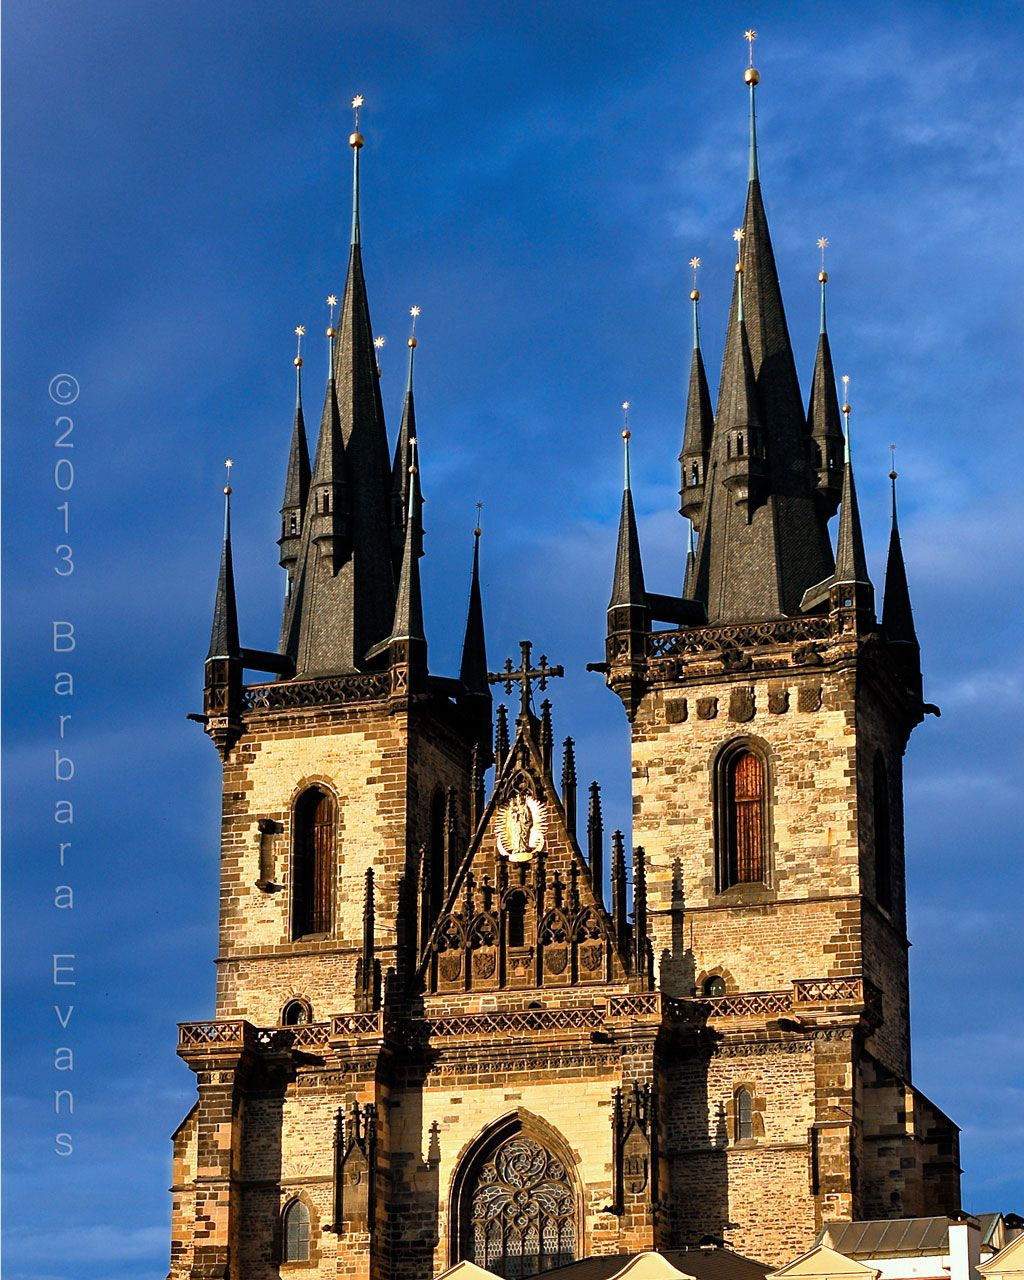 Tyn Church in Prague we stayed right next to this beauty!